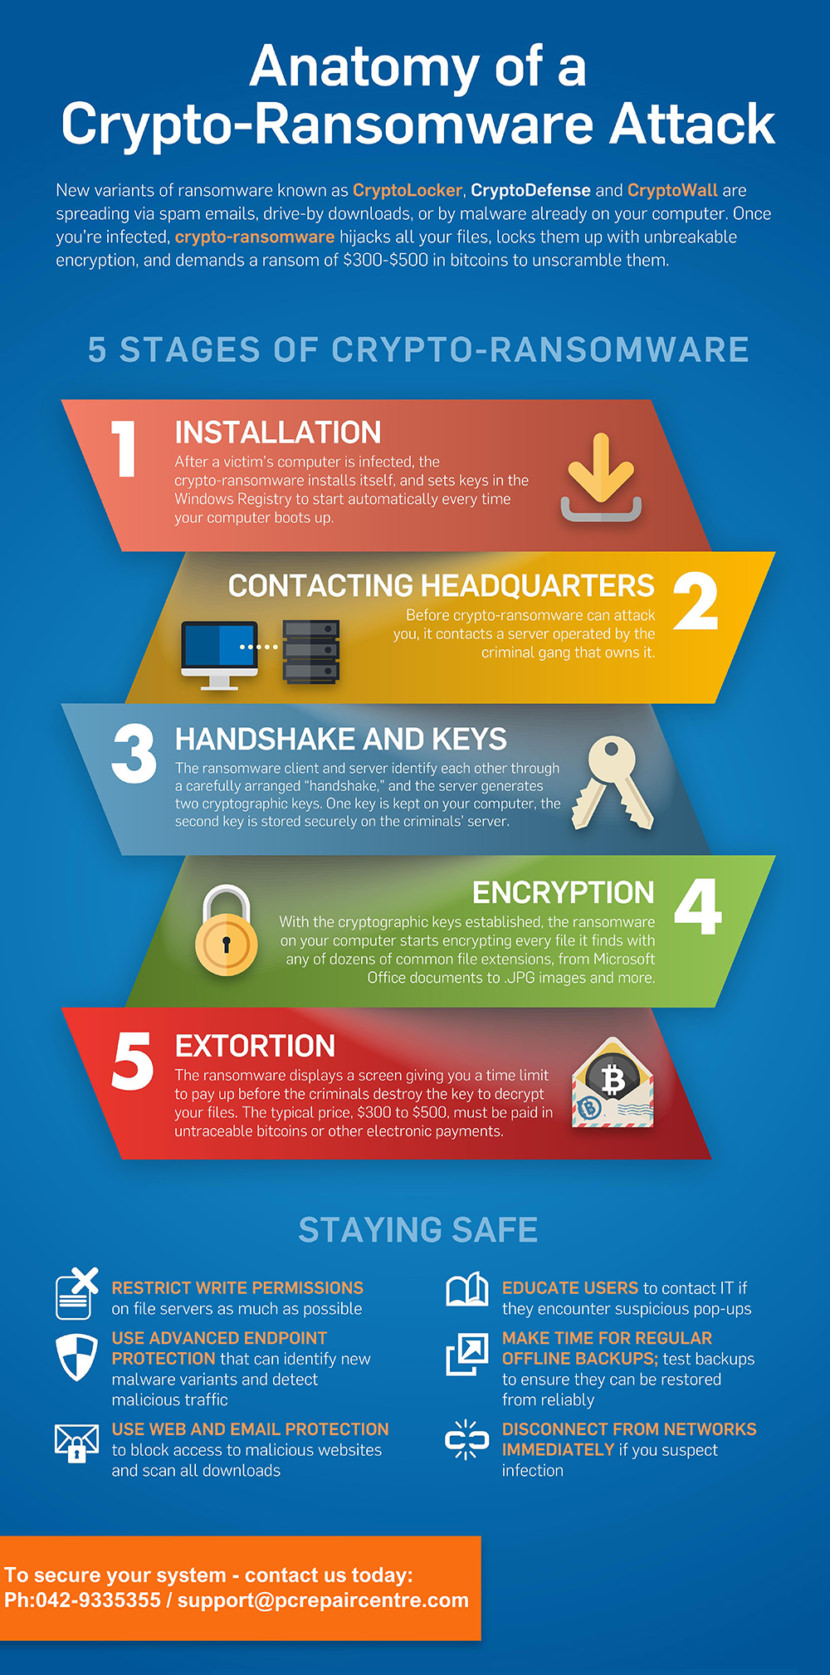 How Ransomware Works - 5 Stages of Crypto-Ransomware